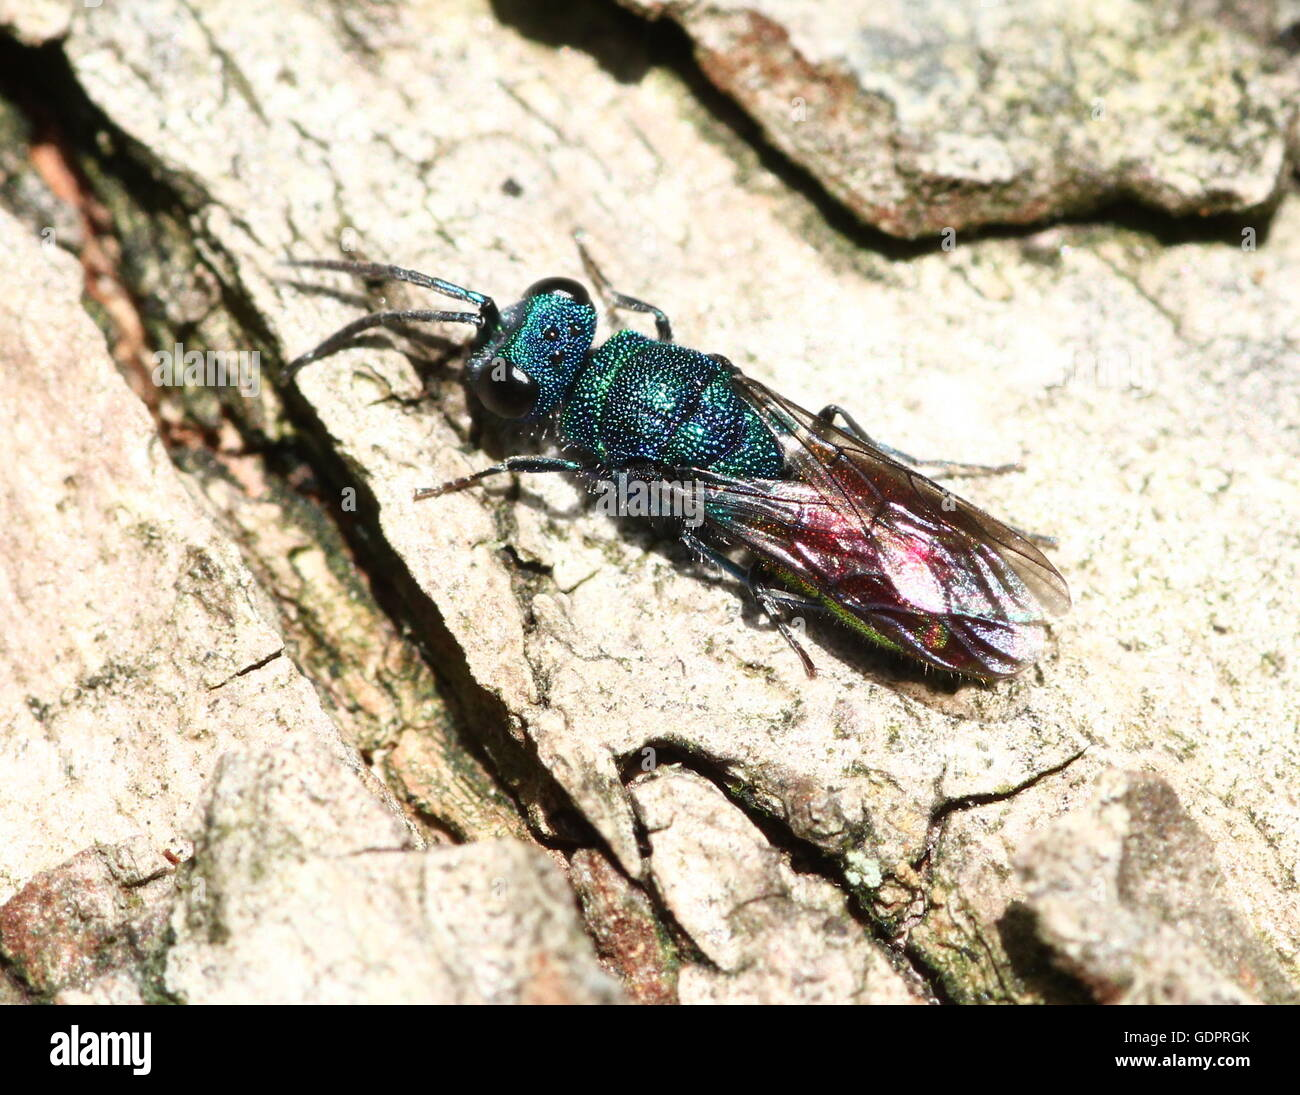 European Ruby tailed wasp (Chrysis ignita), a species of cuckoo wasp. - Stock Image